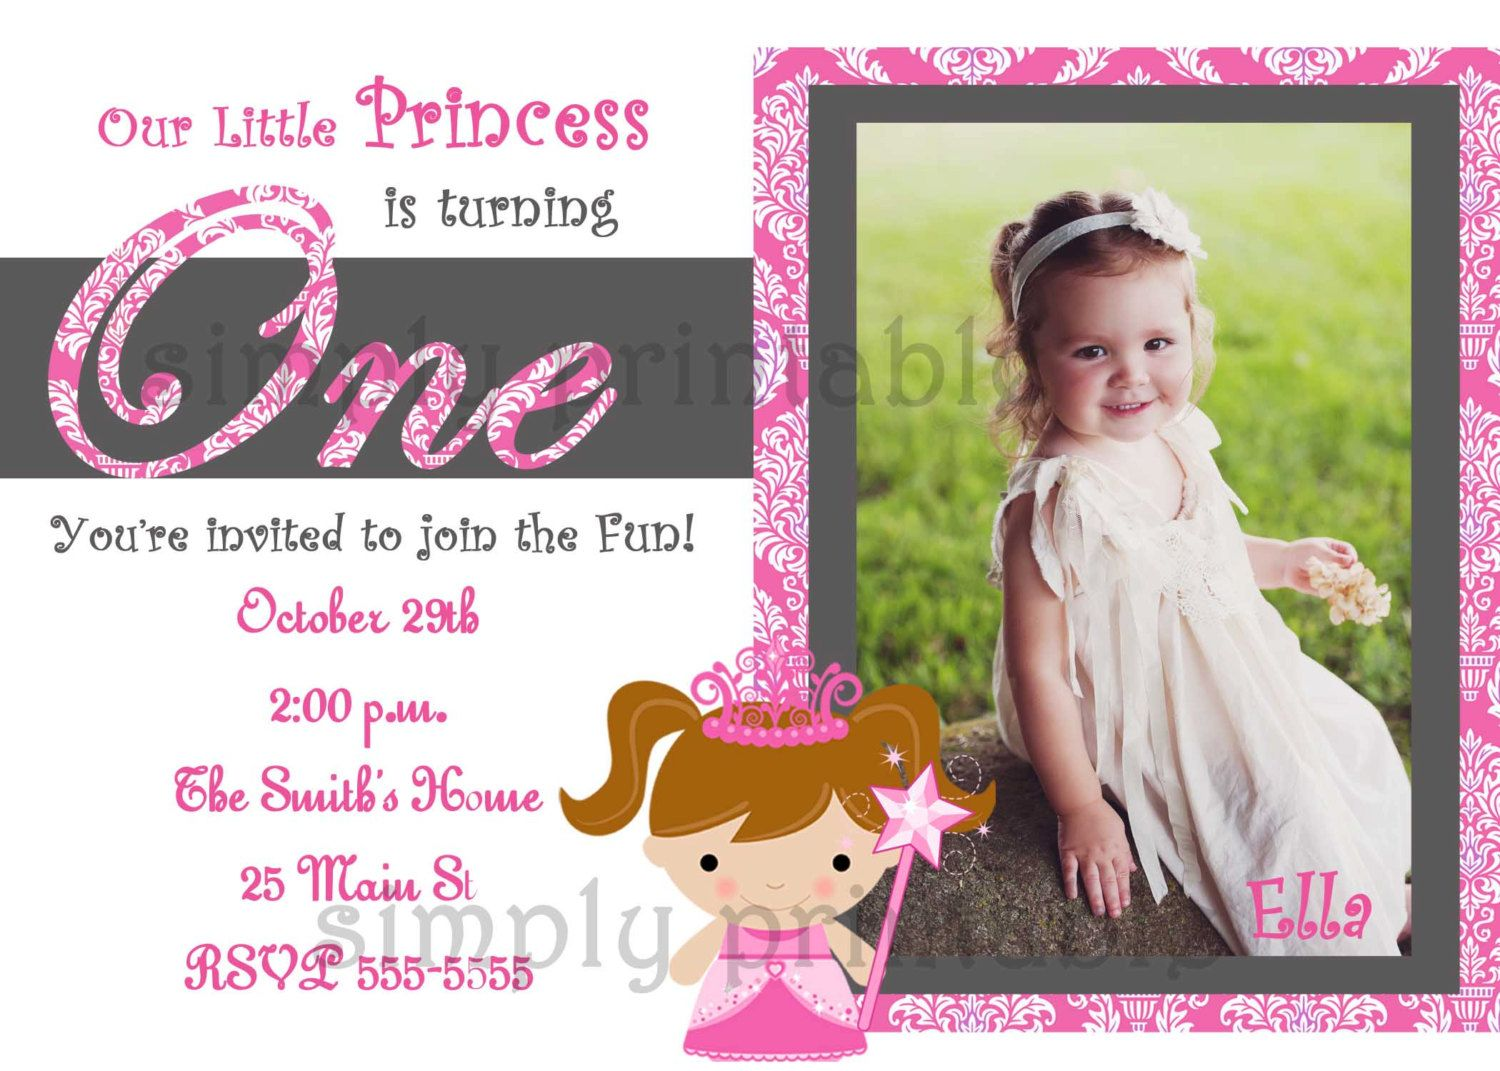 1st birthday invitation cards for daughter ; 28f0815b795d27d870205fce2ded65f1